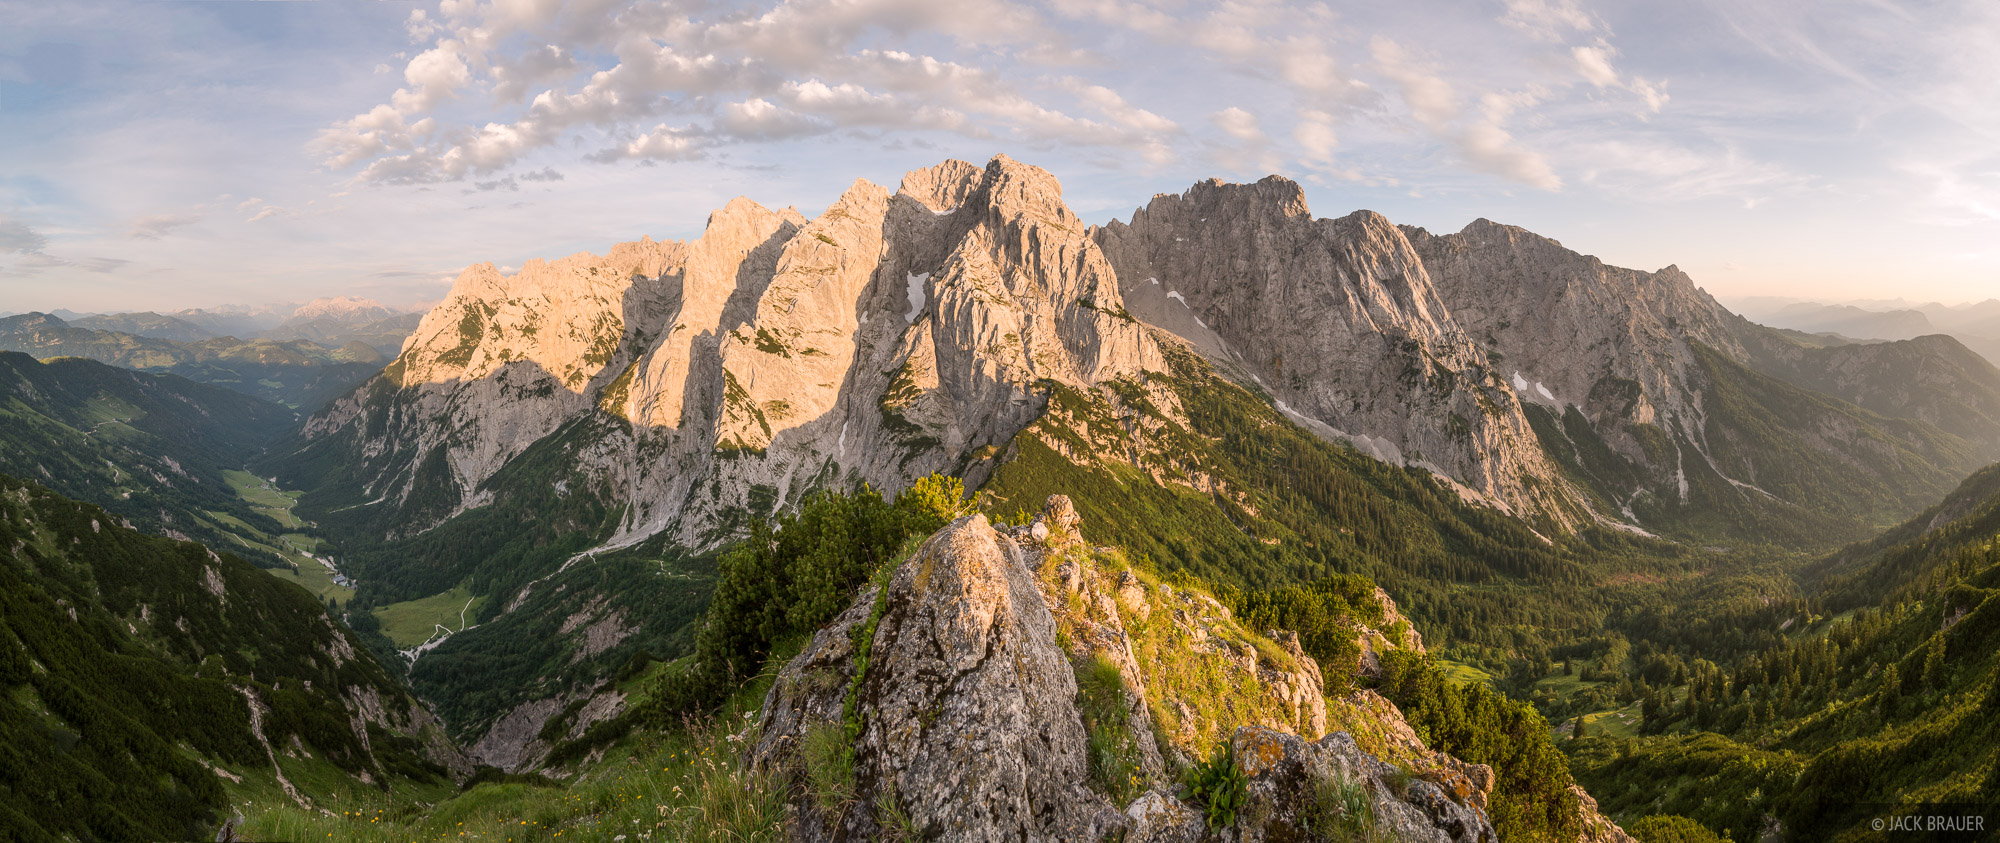 Austria, Kaisergebirge, Stripsenjochhaus, Stripsenkopf, Wilder Kaiser, sunset, panorama, Alps, photo